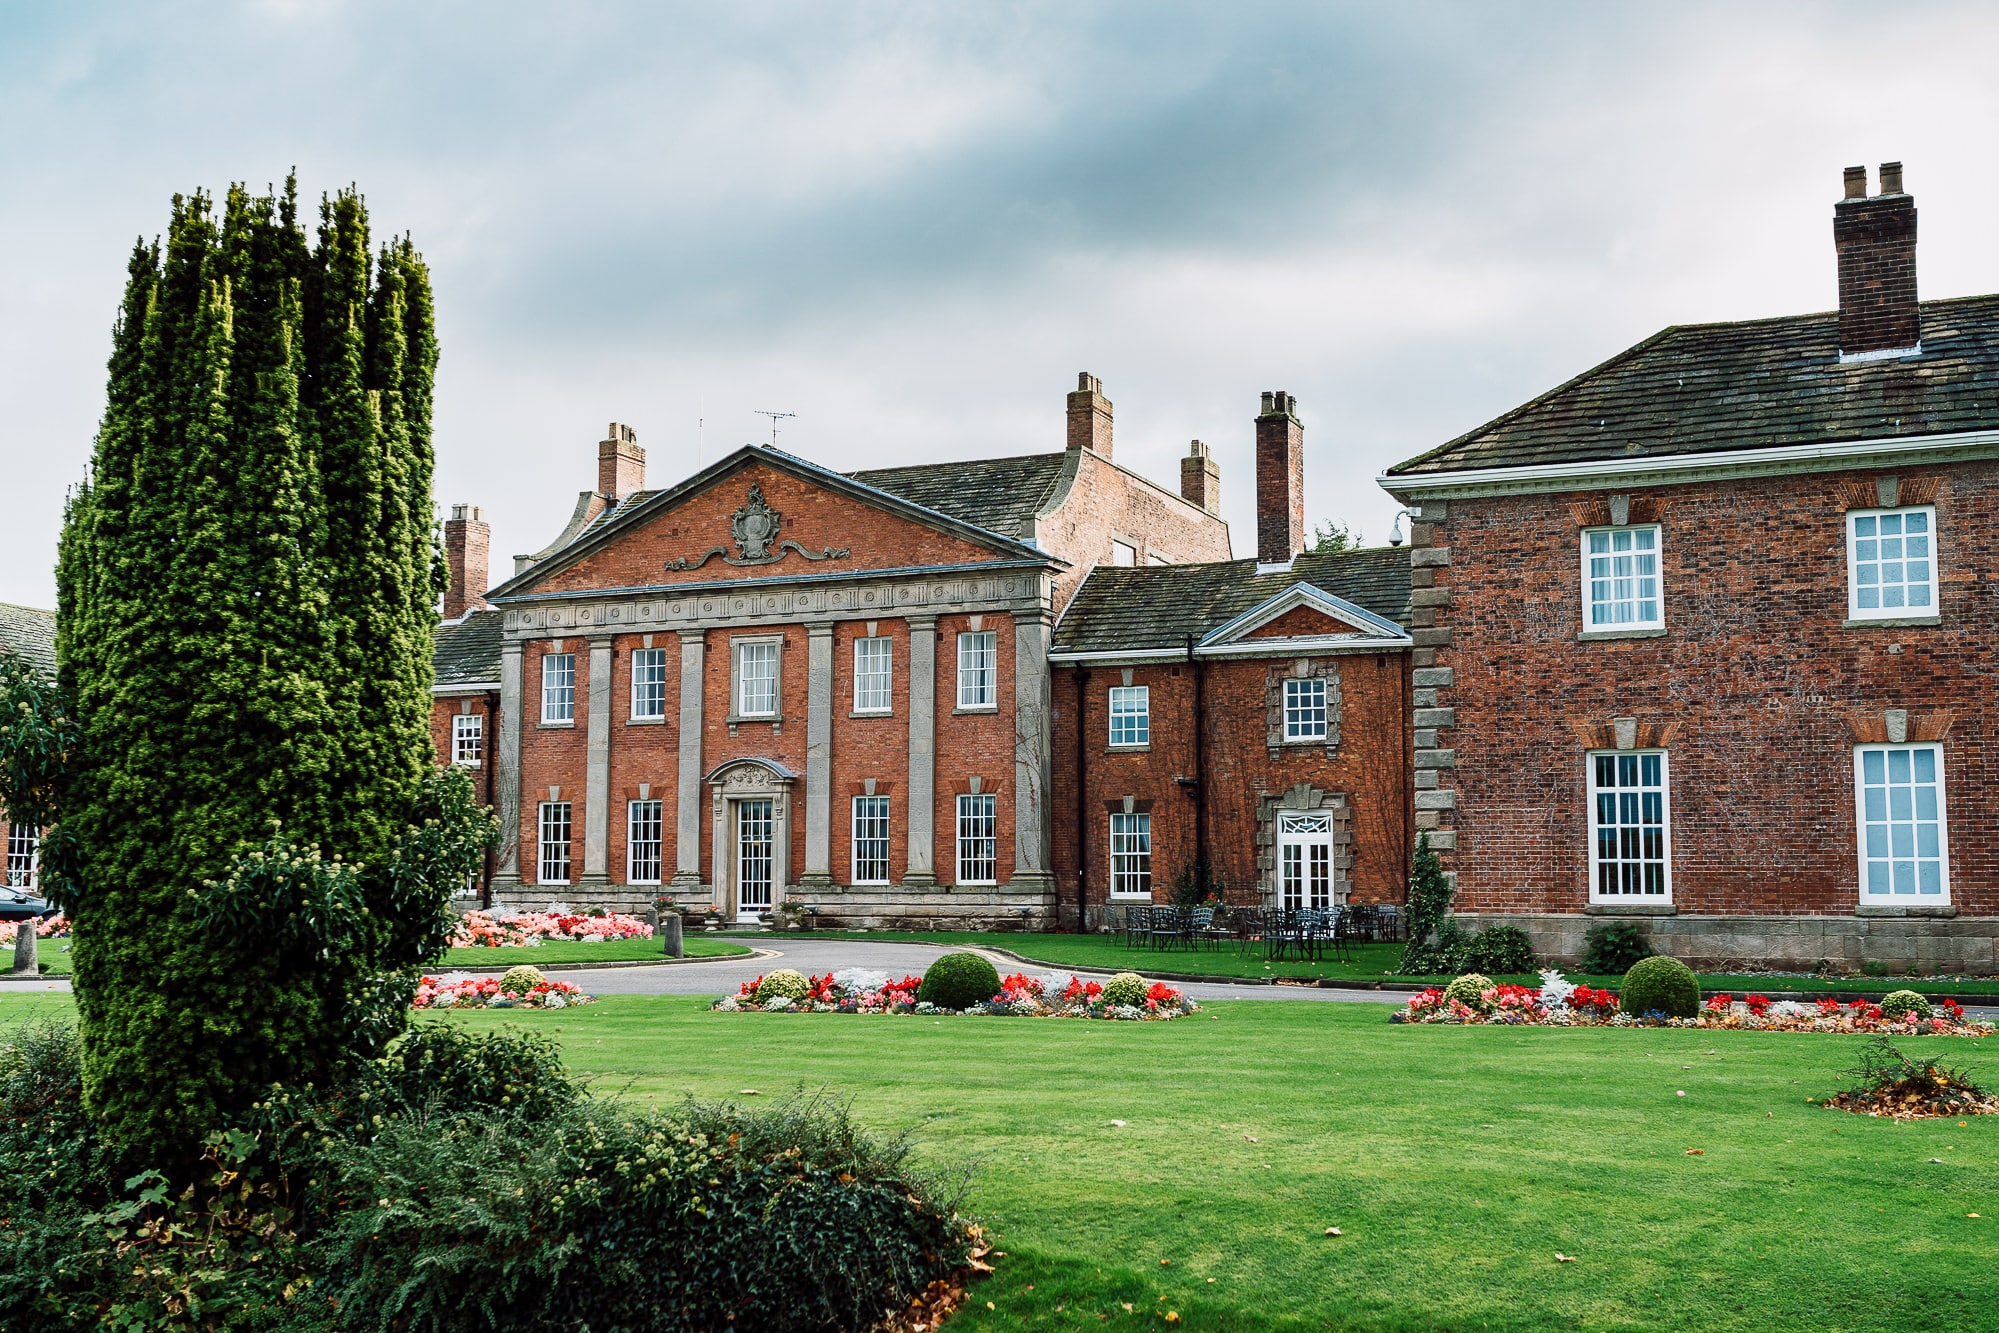 A photo of Mottram Hall in Cheshire